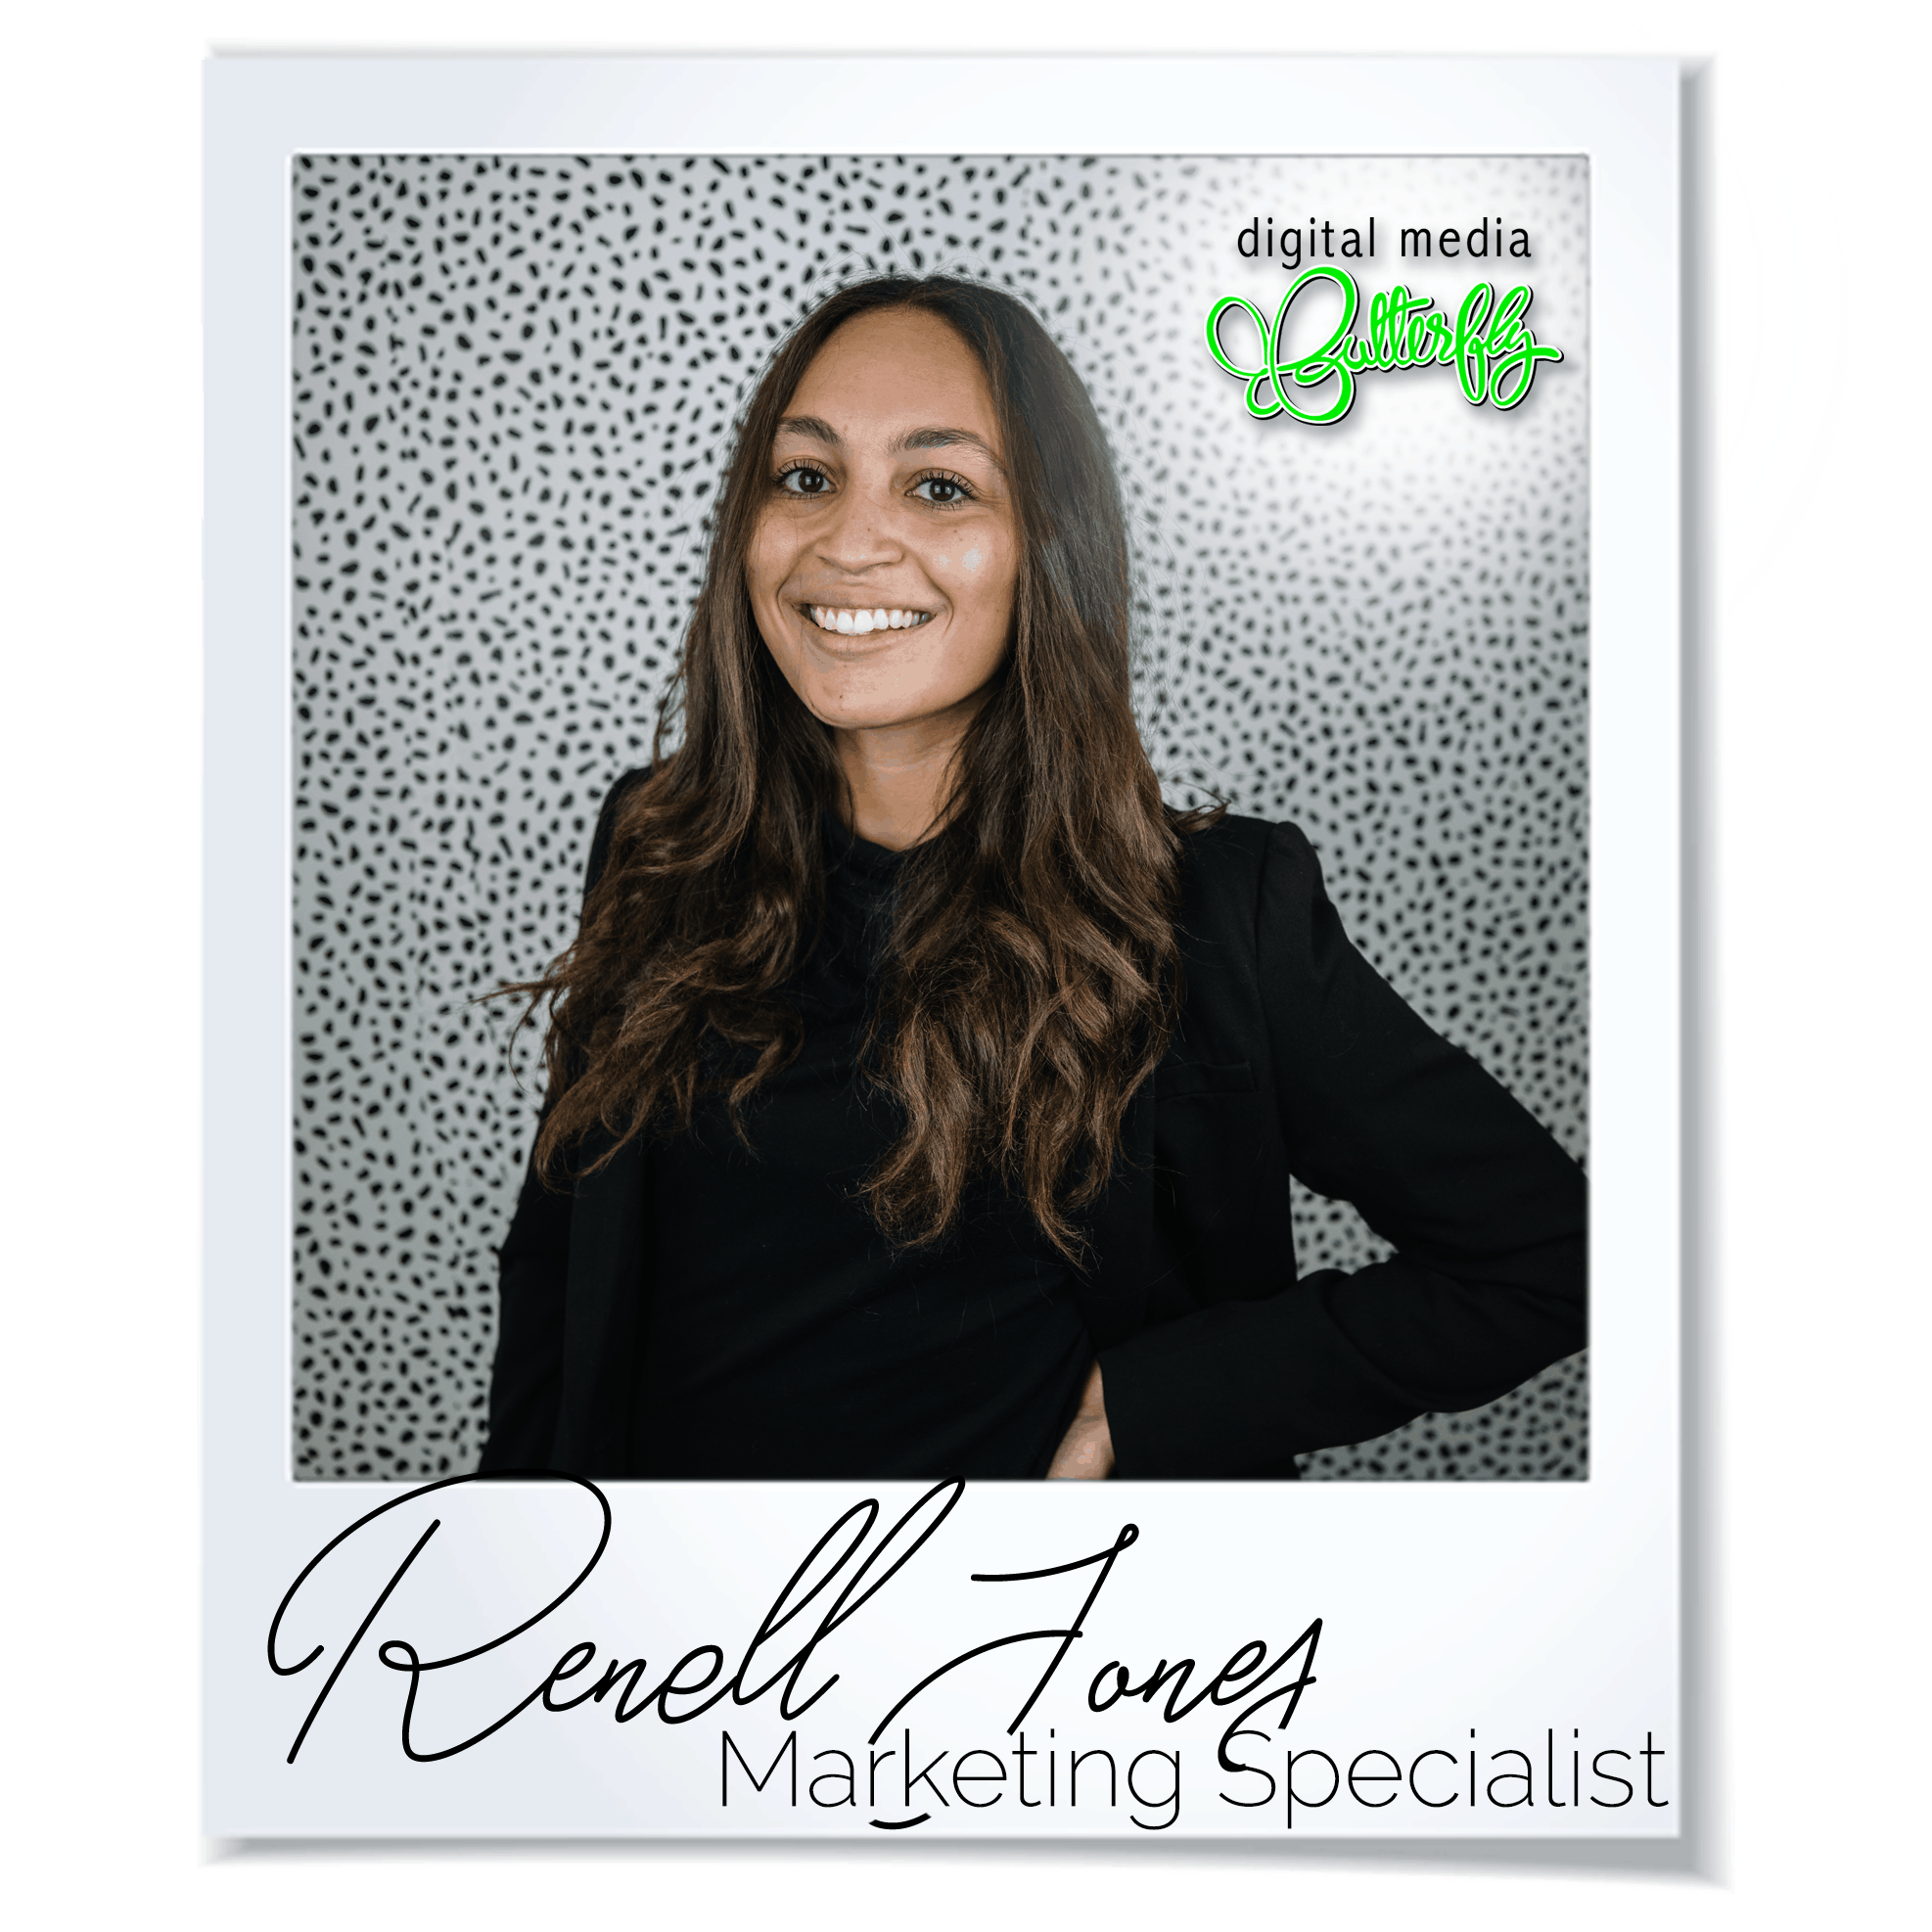 Renell-Jones-Digital-Media-Butterfly-Marketing-Specialist